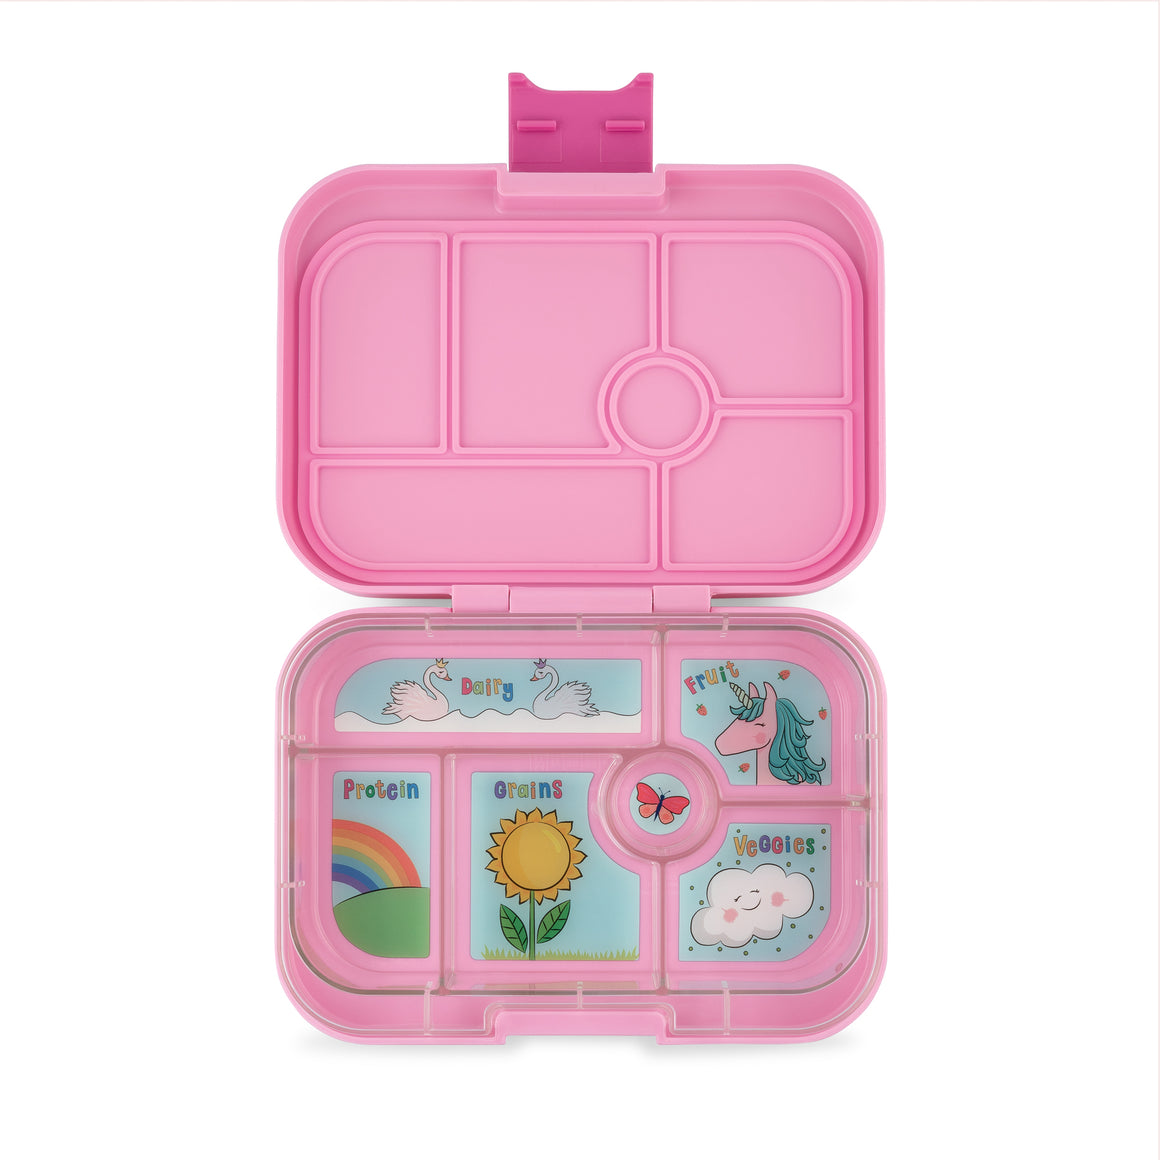 Yumbox Original Lunchbox (6 Compartment) - Power Pink